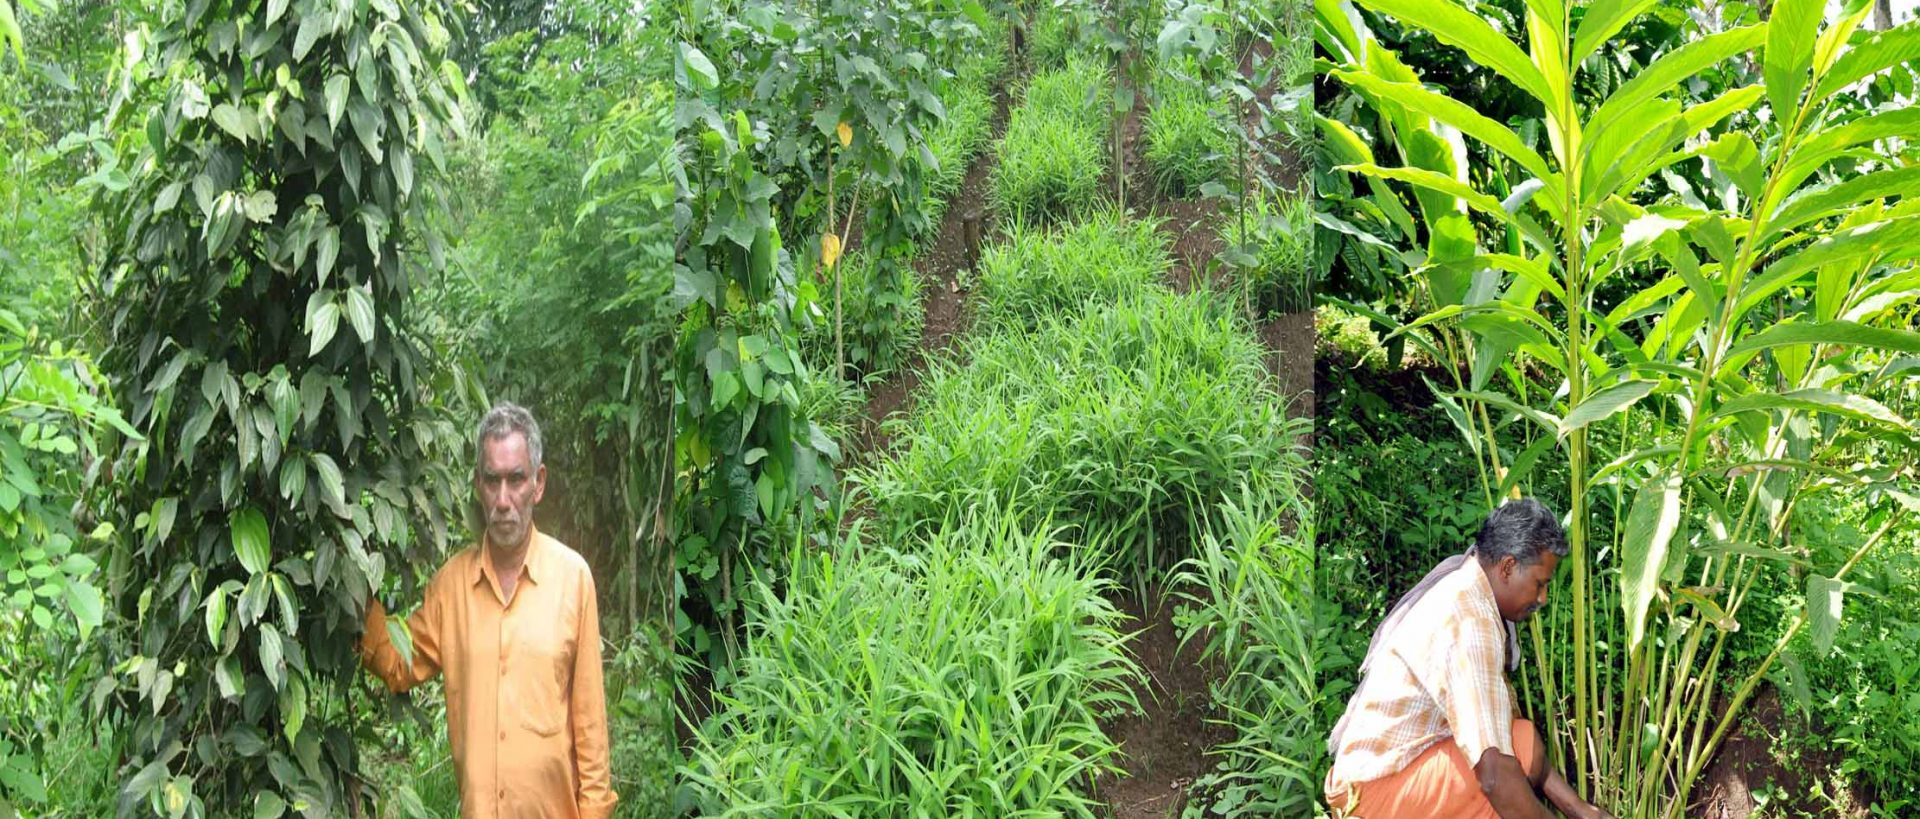 In partnership with nature and small farmers for a better tomorrow